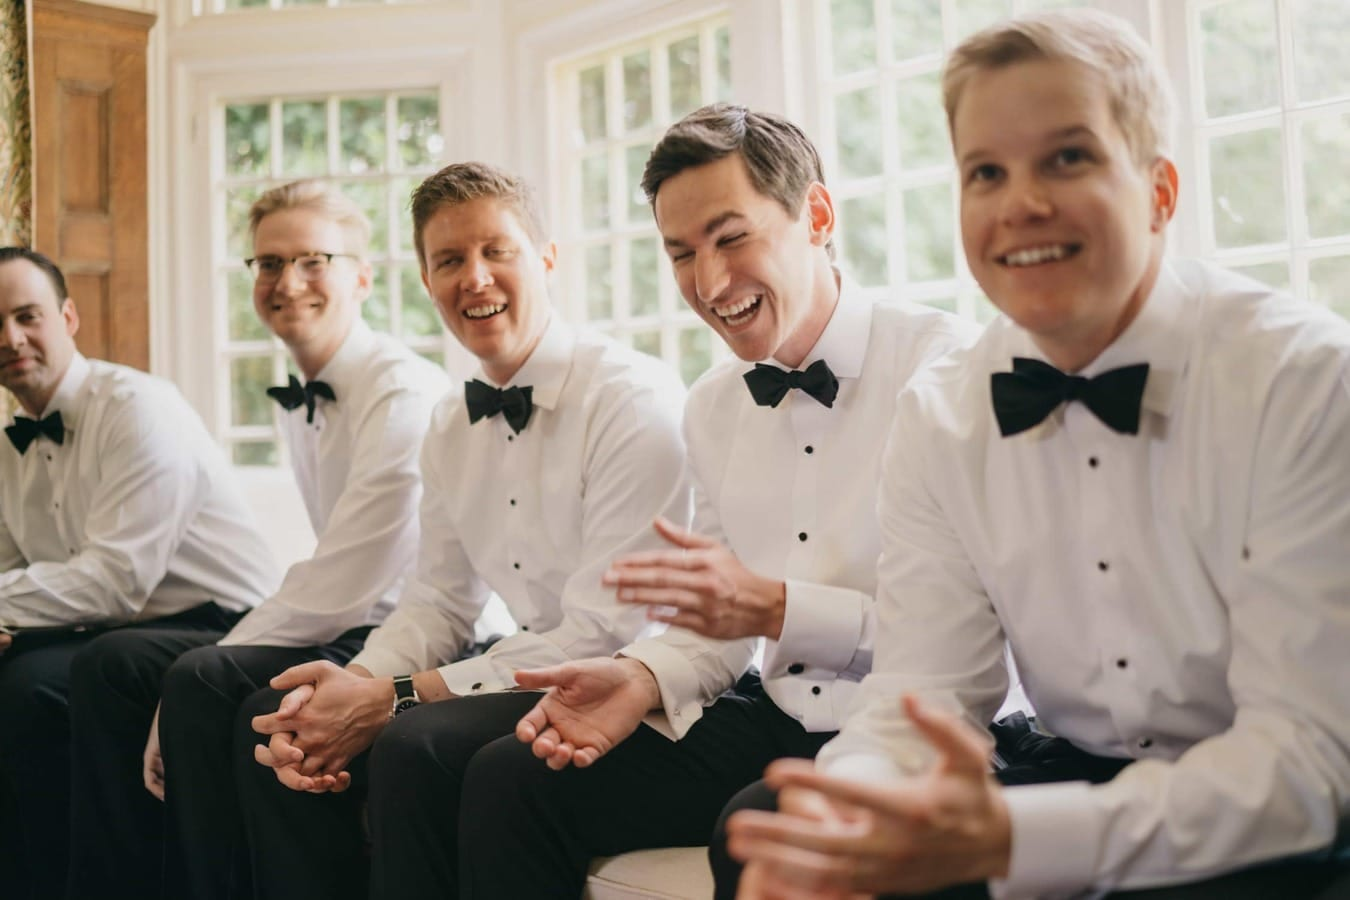 Groomsmen sit in window seat smiling, one laughing, before wedding ceremony.